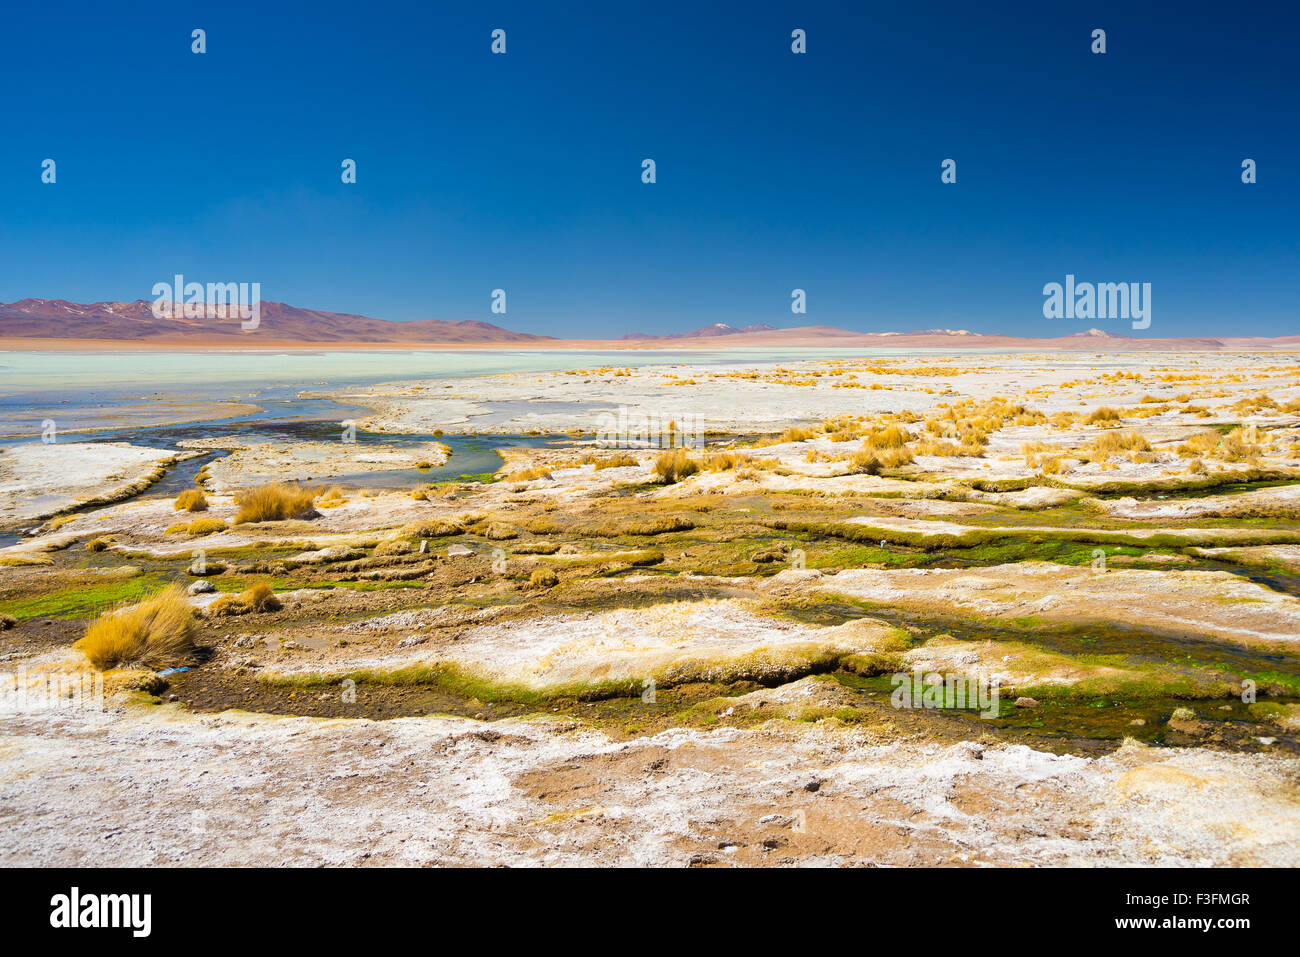 Colorful hot spring with deposits of minerals and algae on the Andean Highlands, Bolivia. Salt lake, mountain range - Stock Image